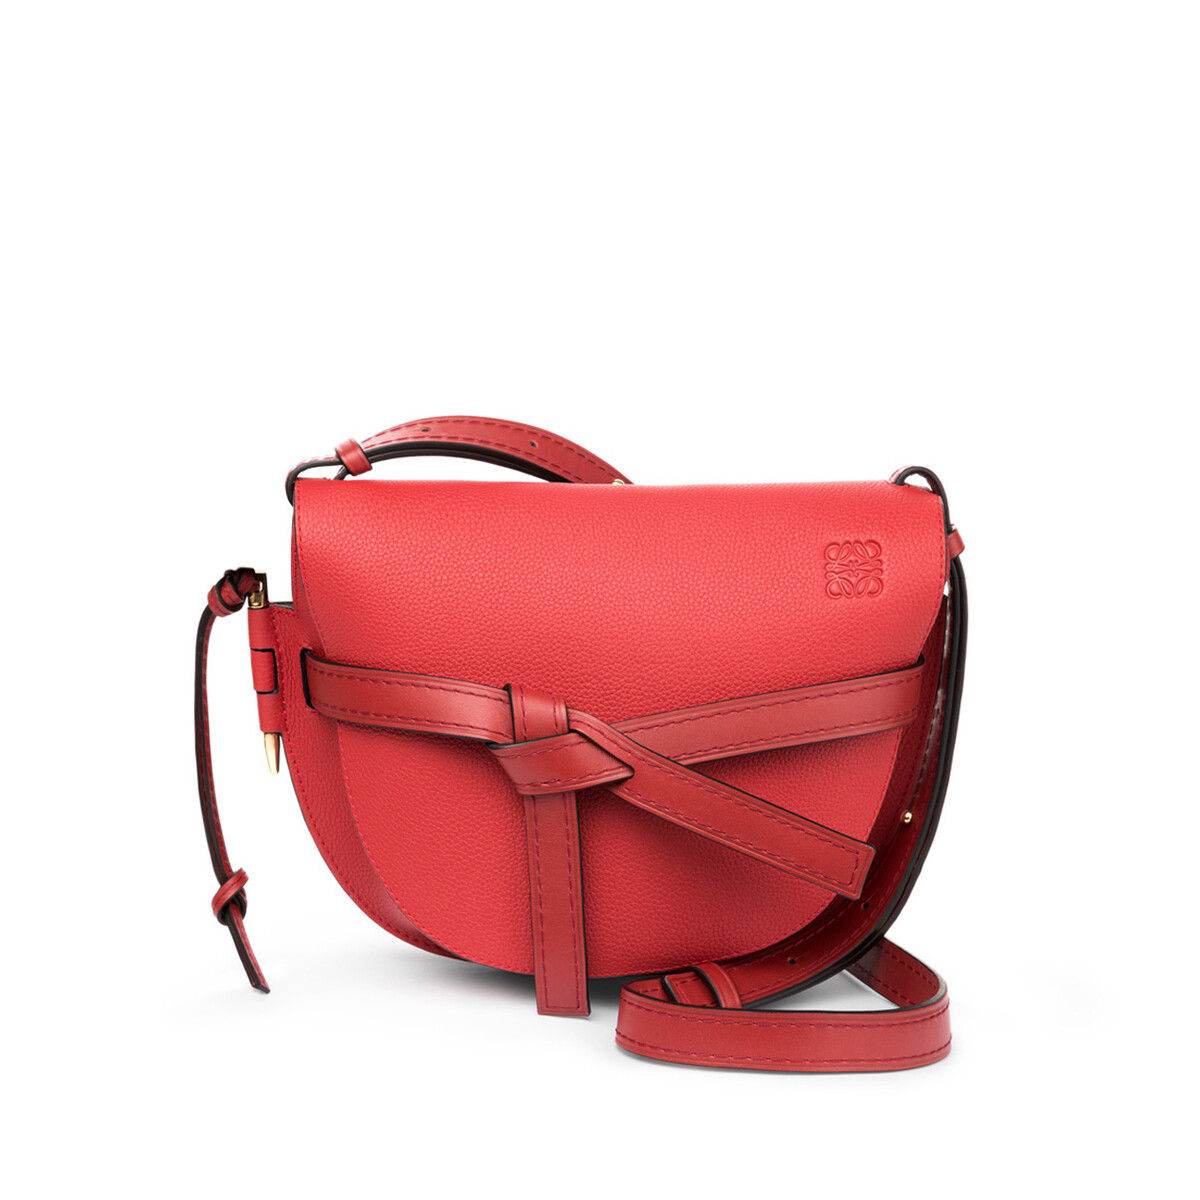 LOEWE Gate Small Bag Scarlet Red/Burnt Red front